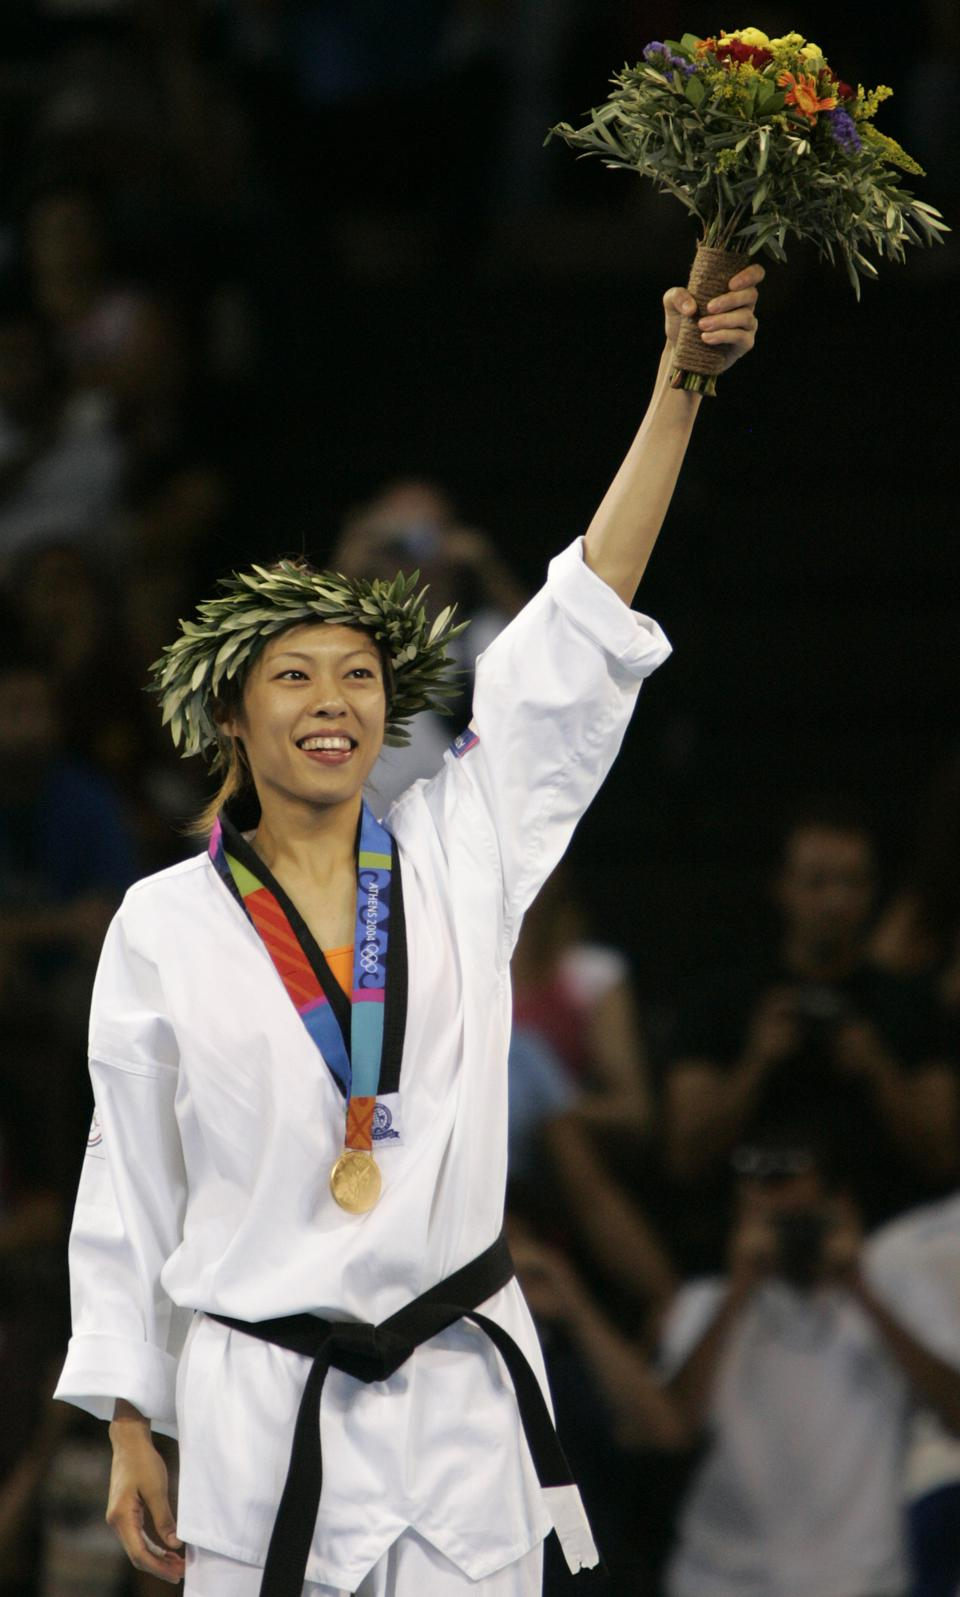 Chen Shih-Hsin receives her Olympic Gold Medal at the Athens Olympic Games in 2004.